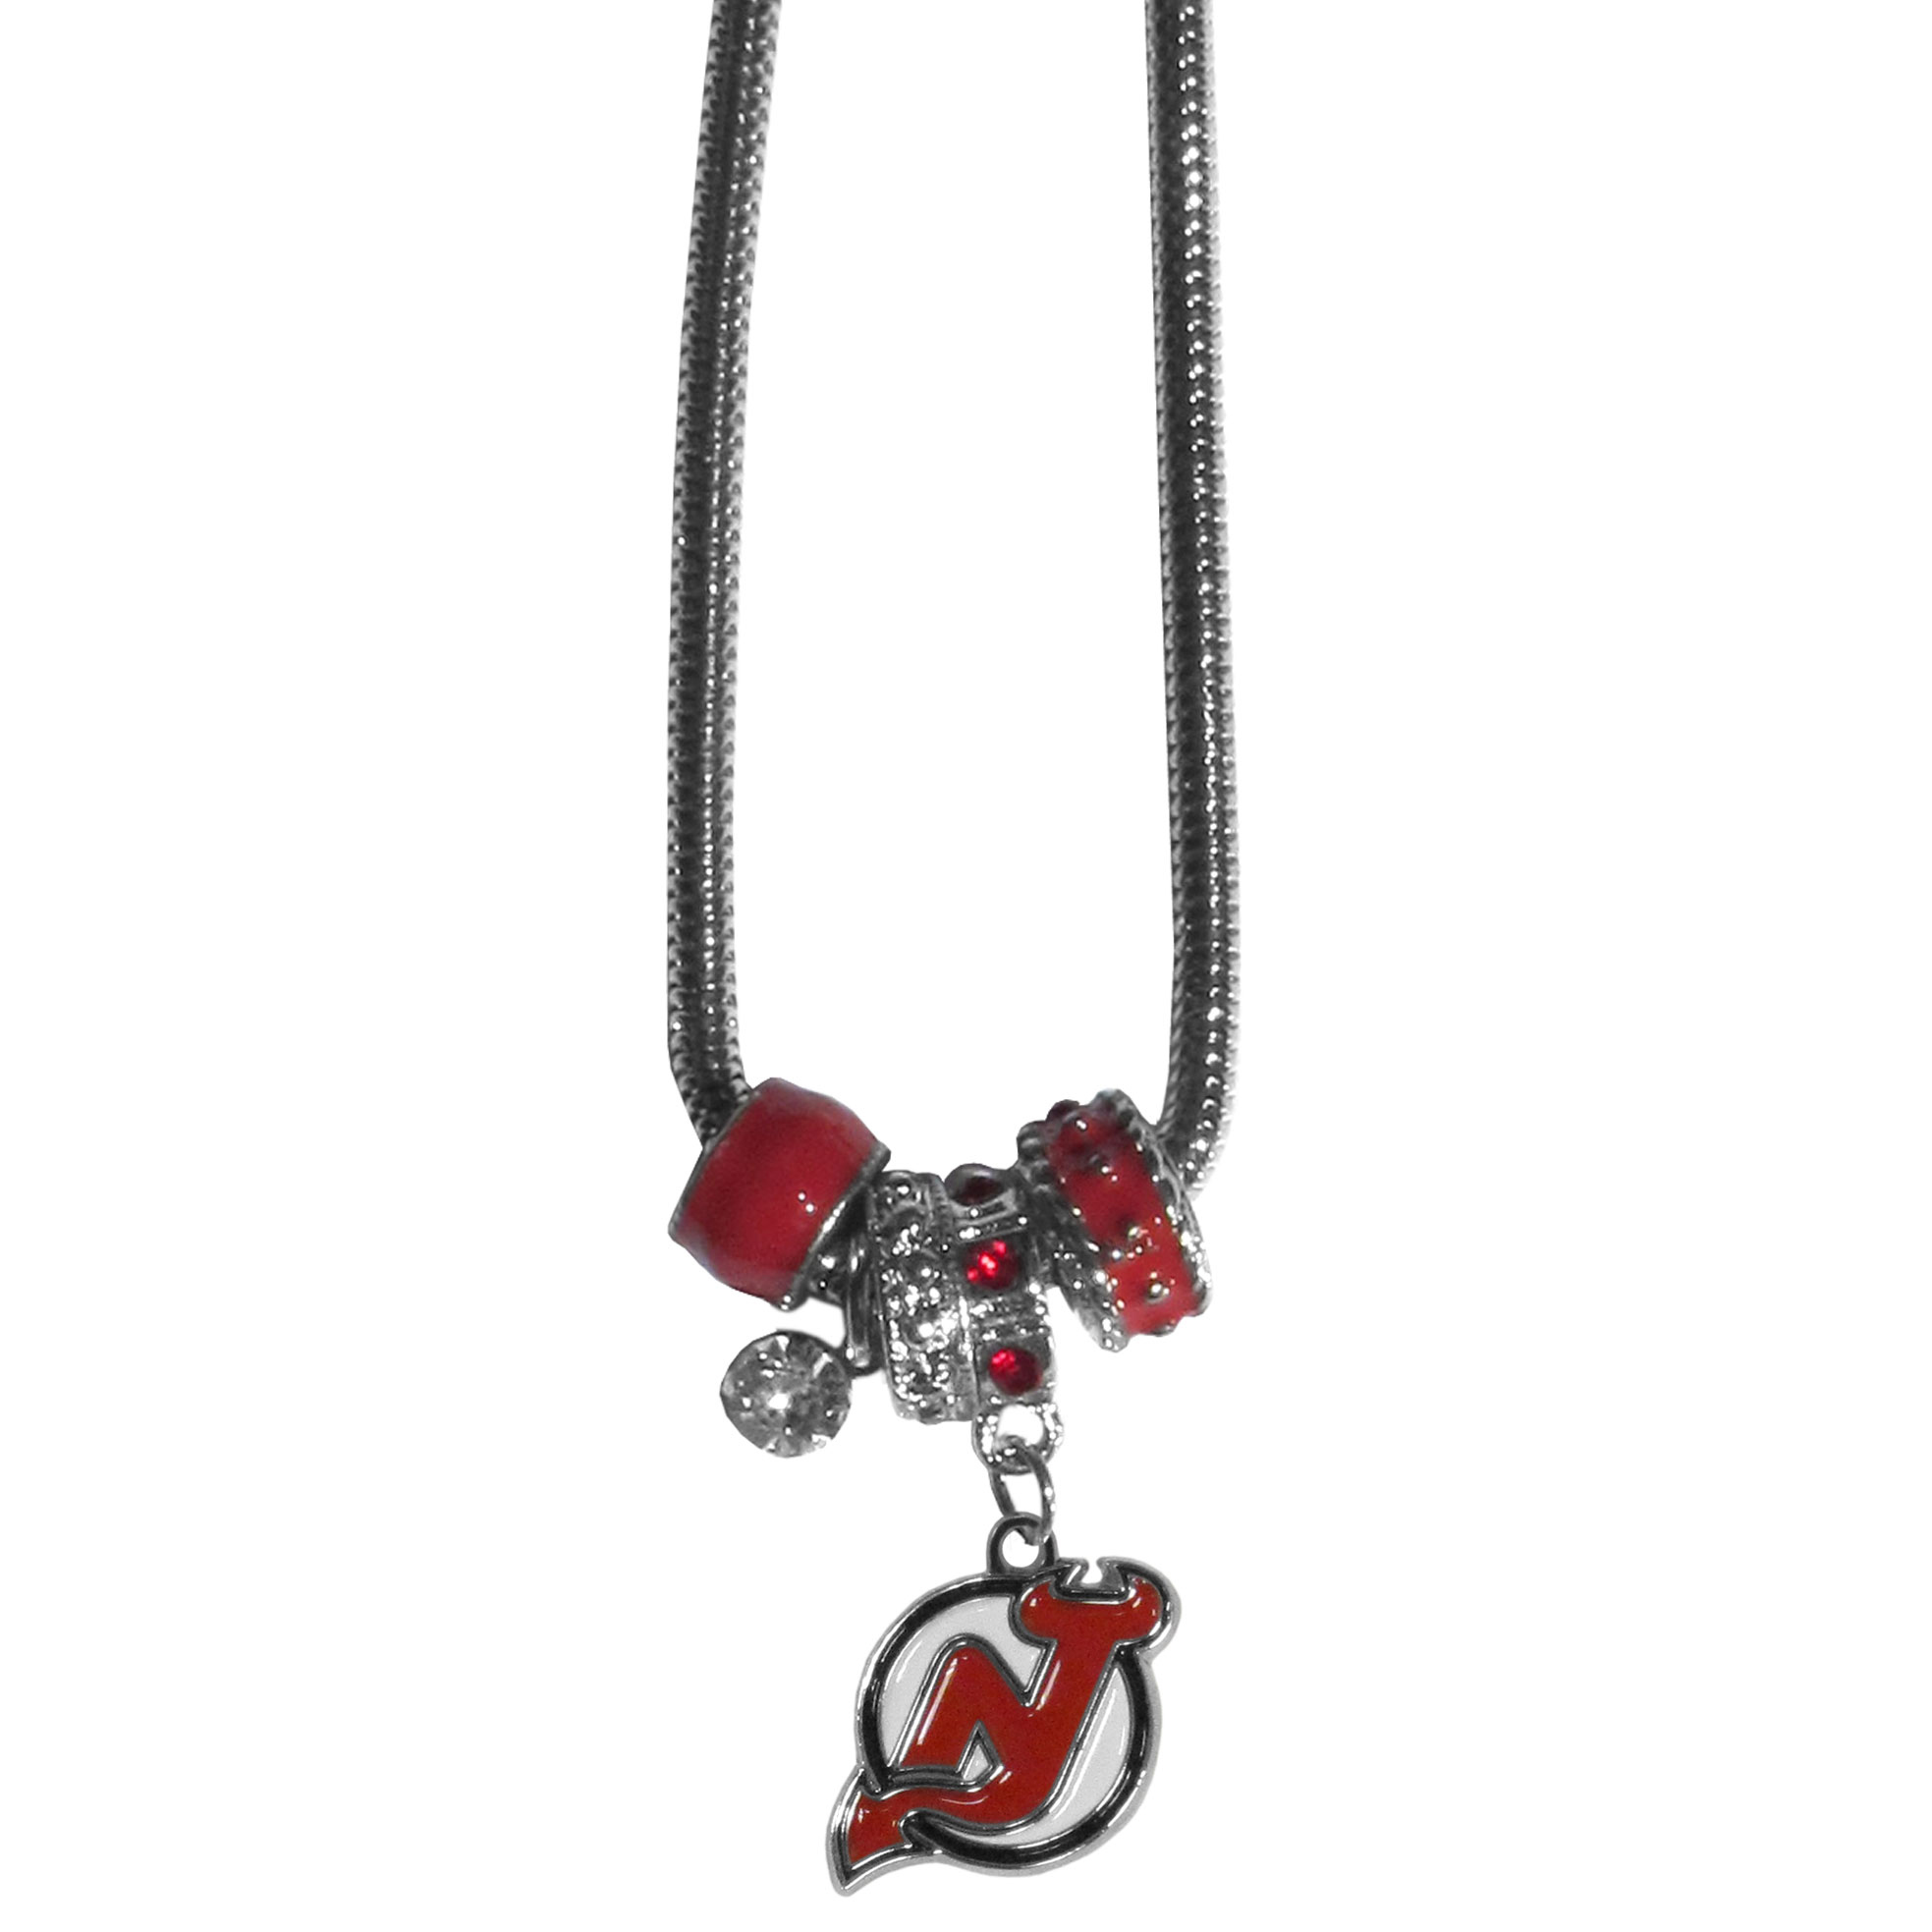 New Jersey Devils Euro Bead Necklace - We have combined the wildly popular Euro style beads with your favorite team to create our New Jersey Devils euro bead necklace. The 18 inch snake chain features 4 Euro beads with enameled New Jersey Devils colors and rhinestone accents with a high polish, nickel free charm and rhinestone charm. Perfect way to show off your New Jersey Devils pride.